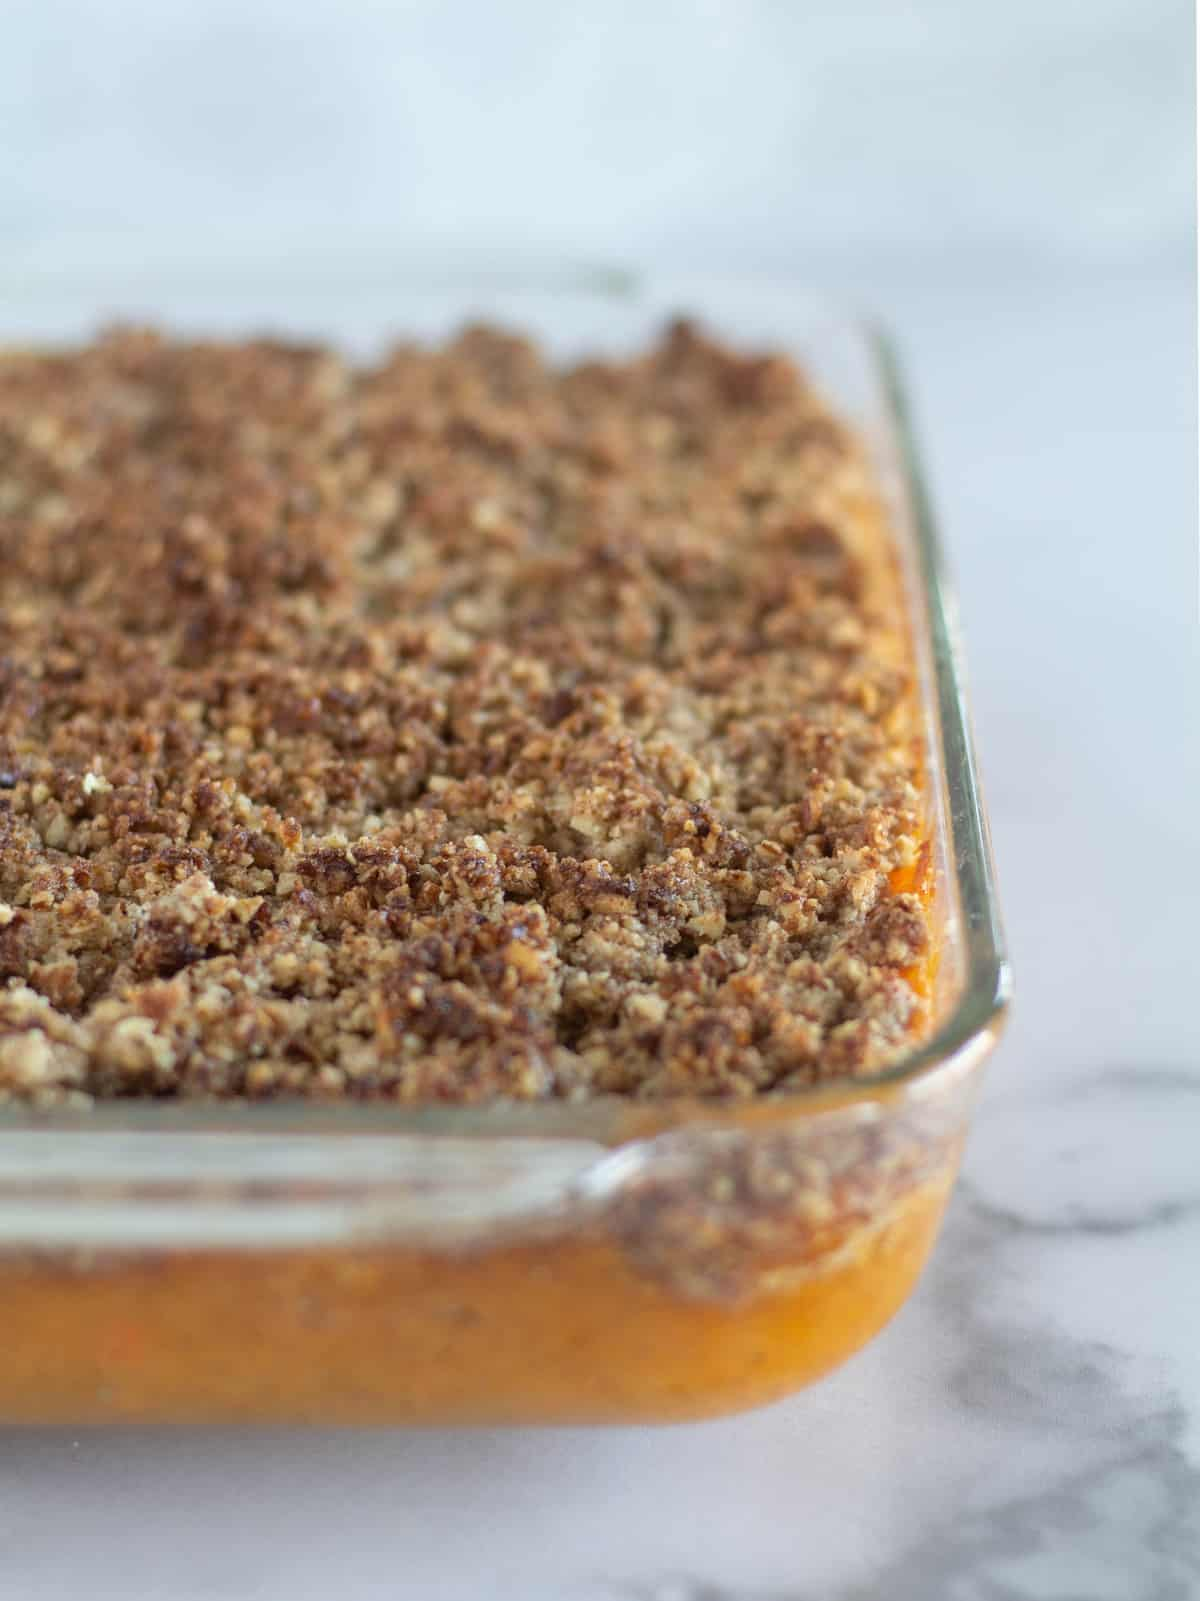 close up of sweet potato casserole in baking dish